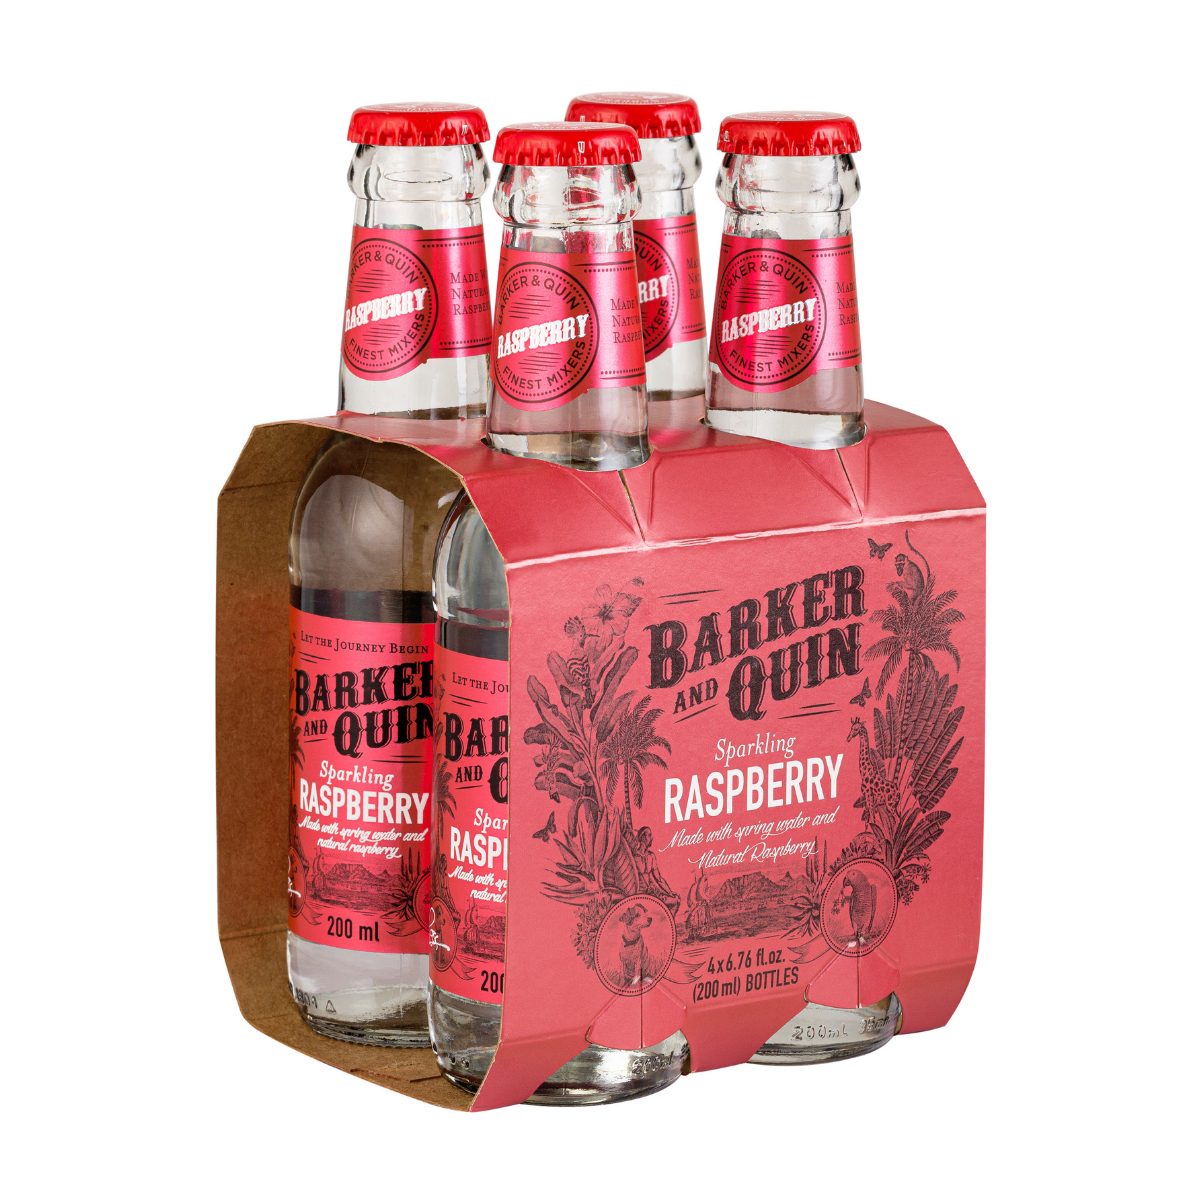 Barker and Quin Raspberry Fizz (4 x 200ml)